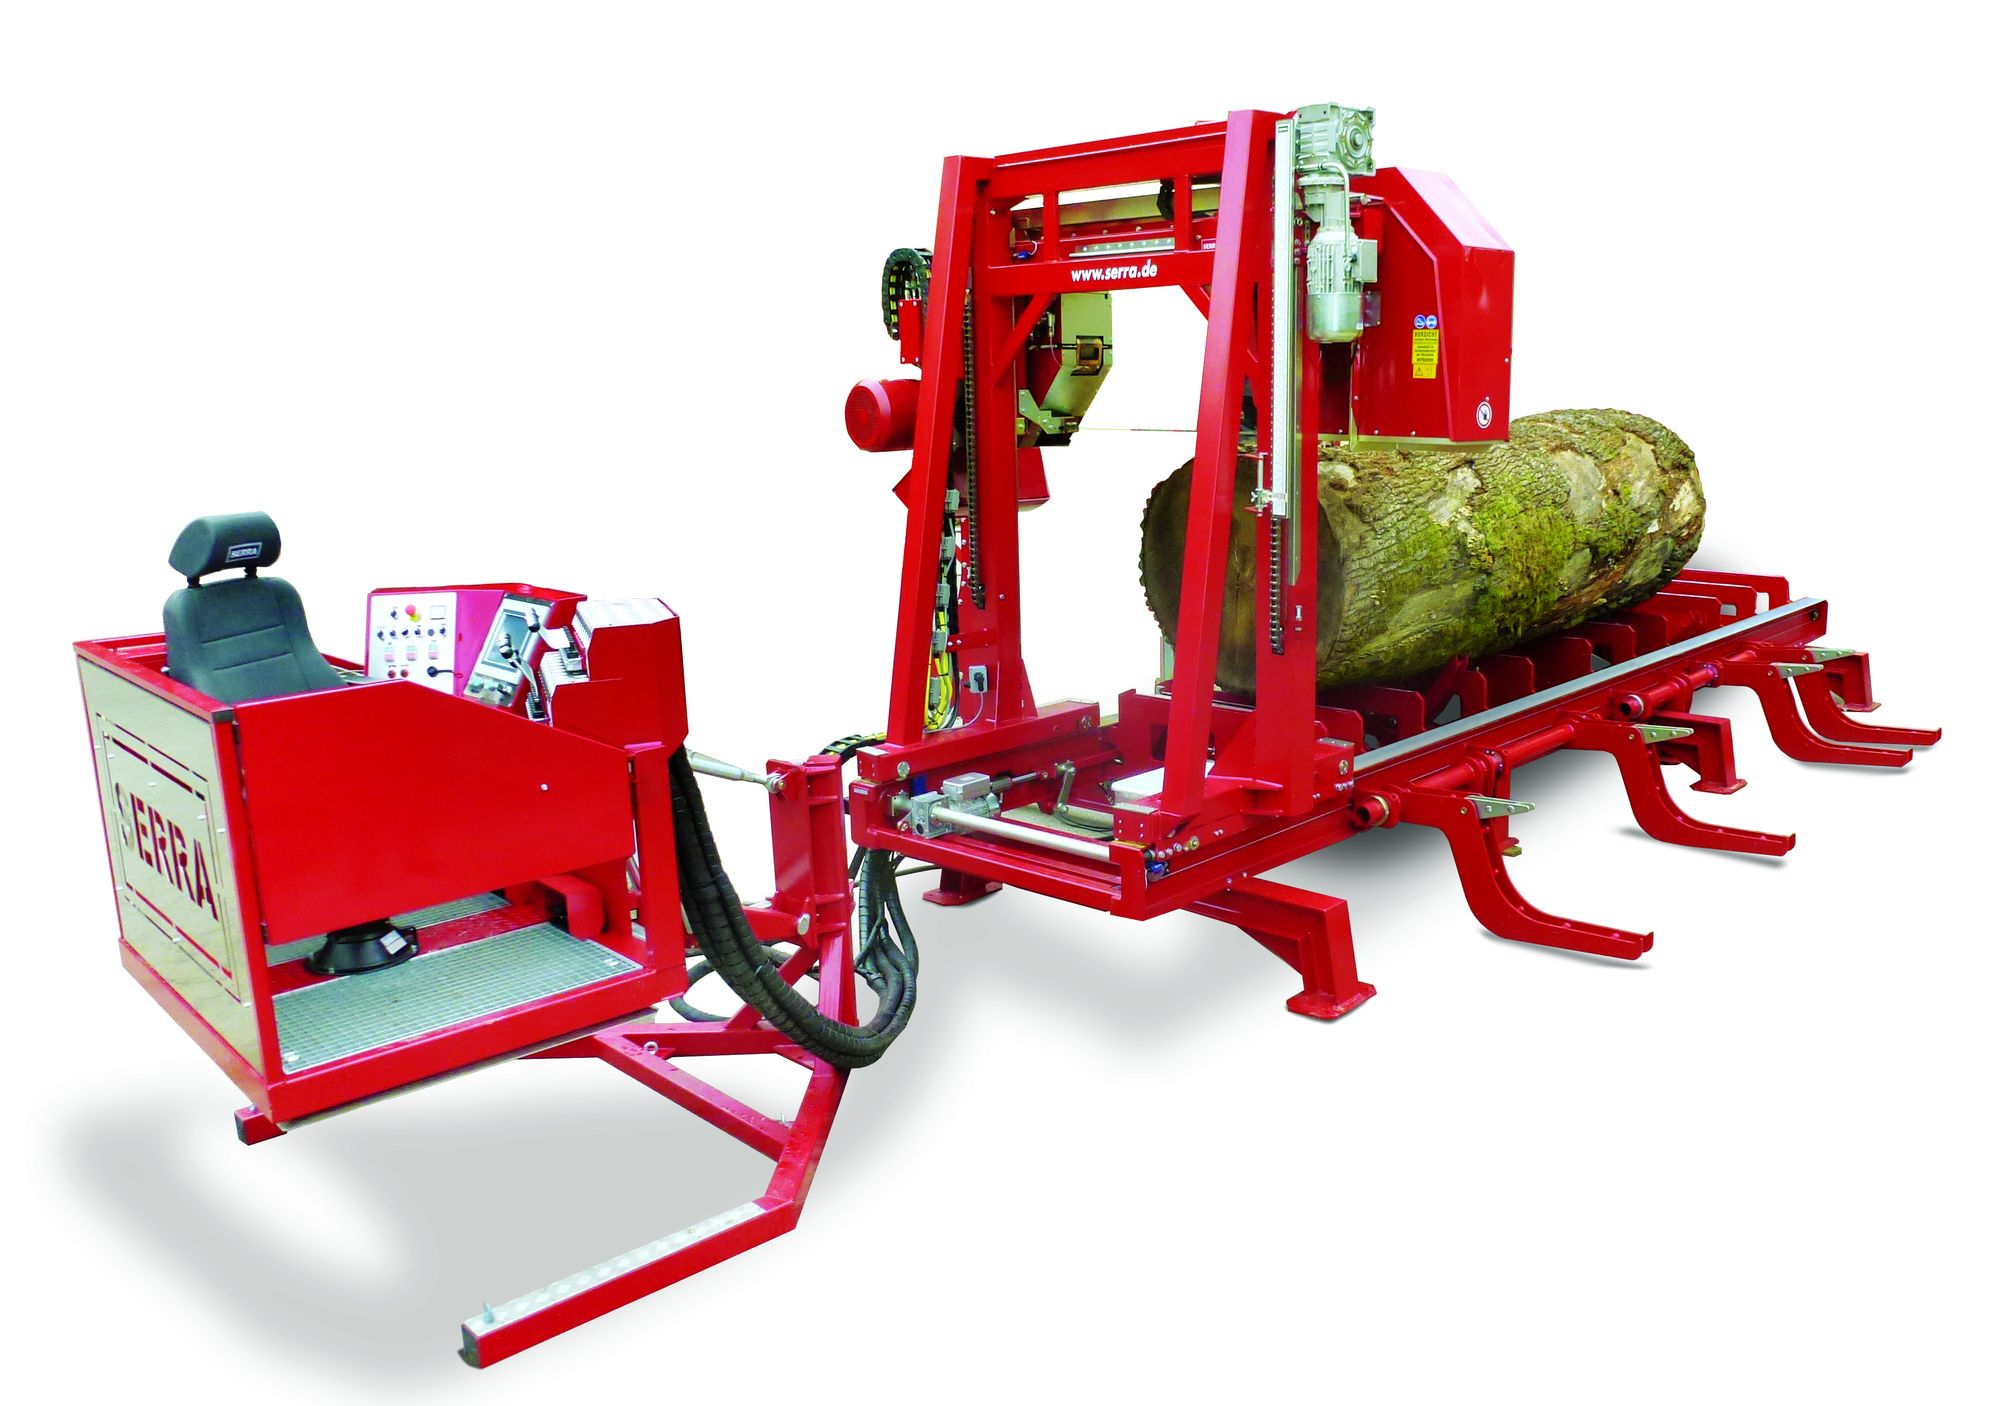 Serra log band saw with maximum equipment for large logs.